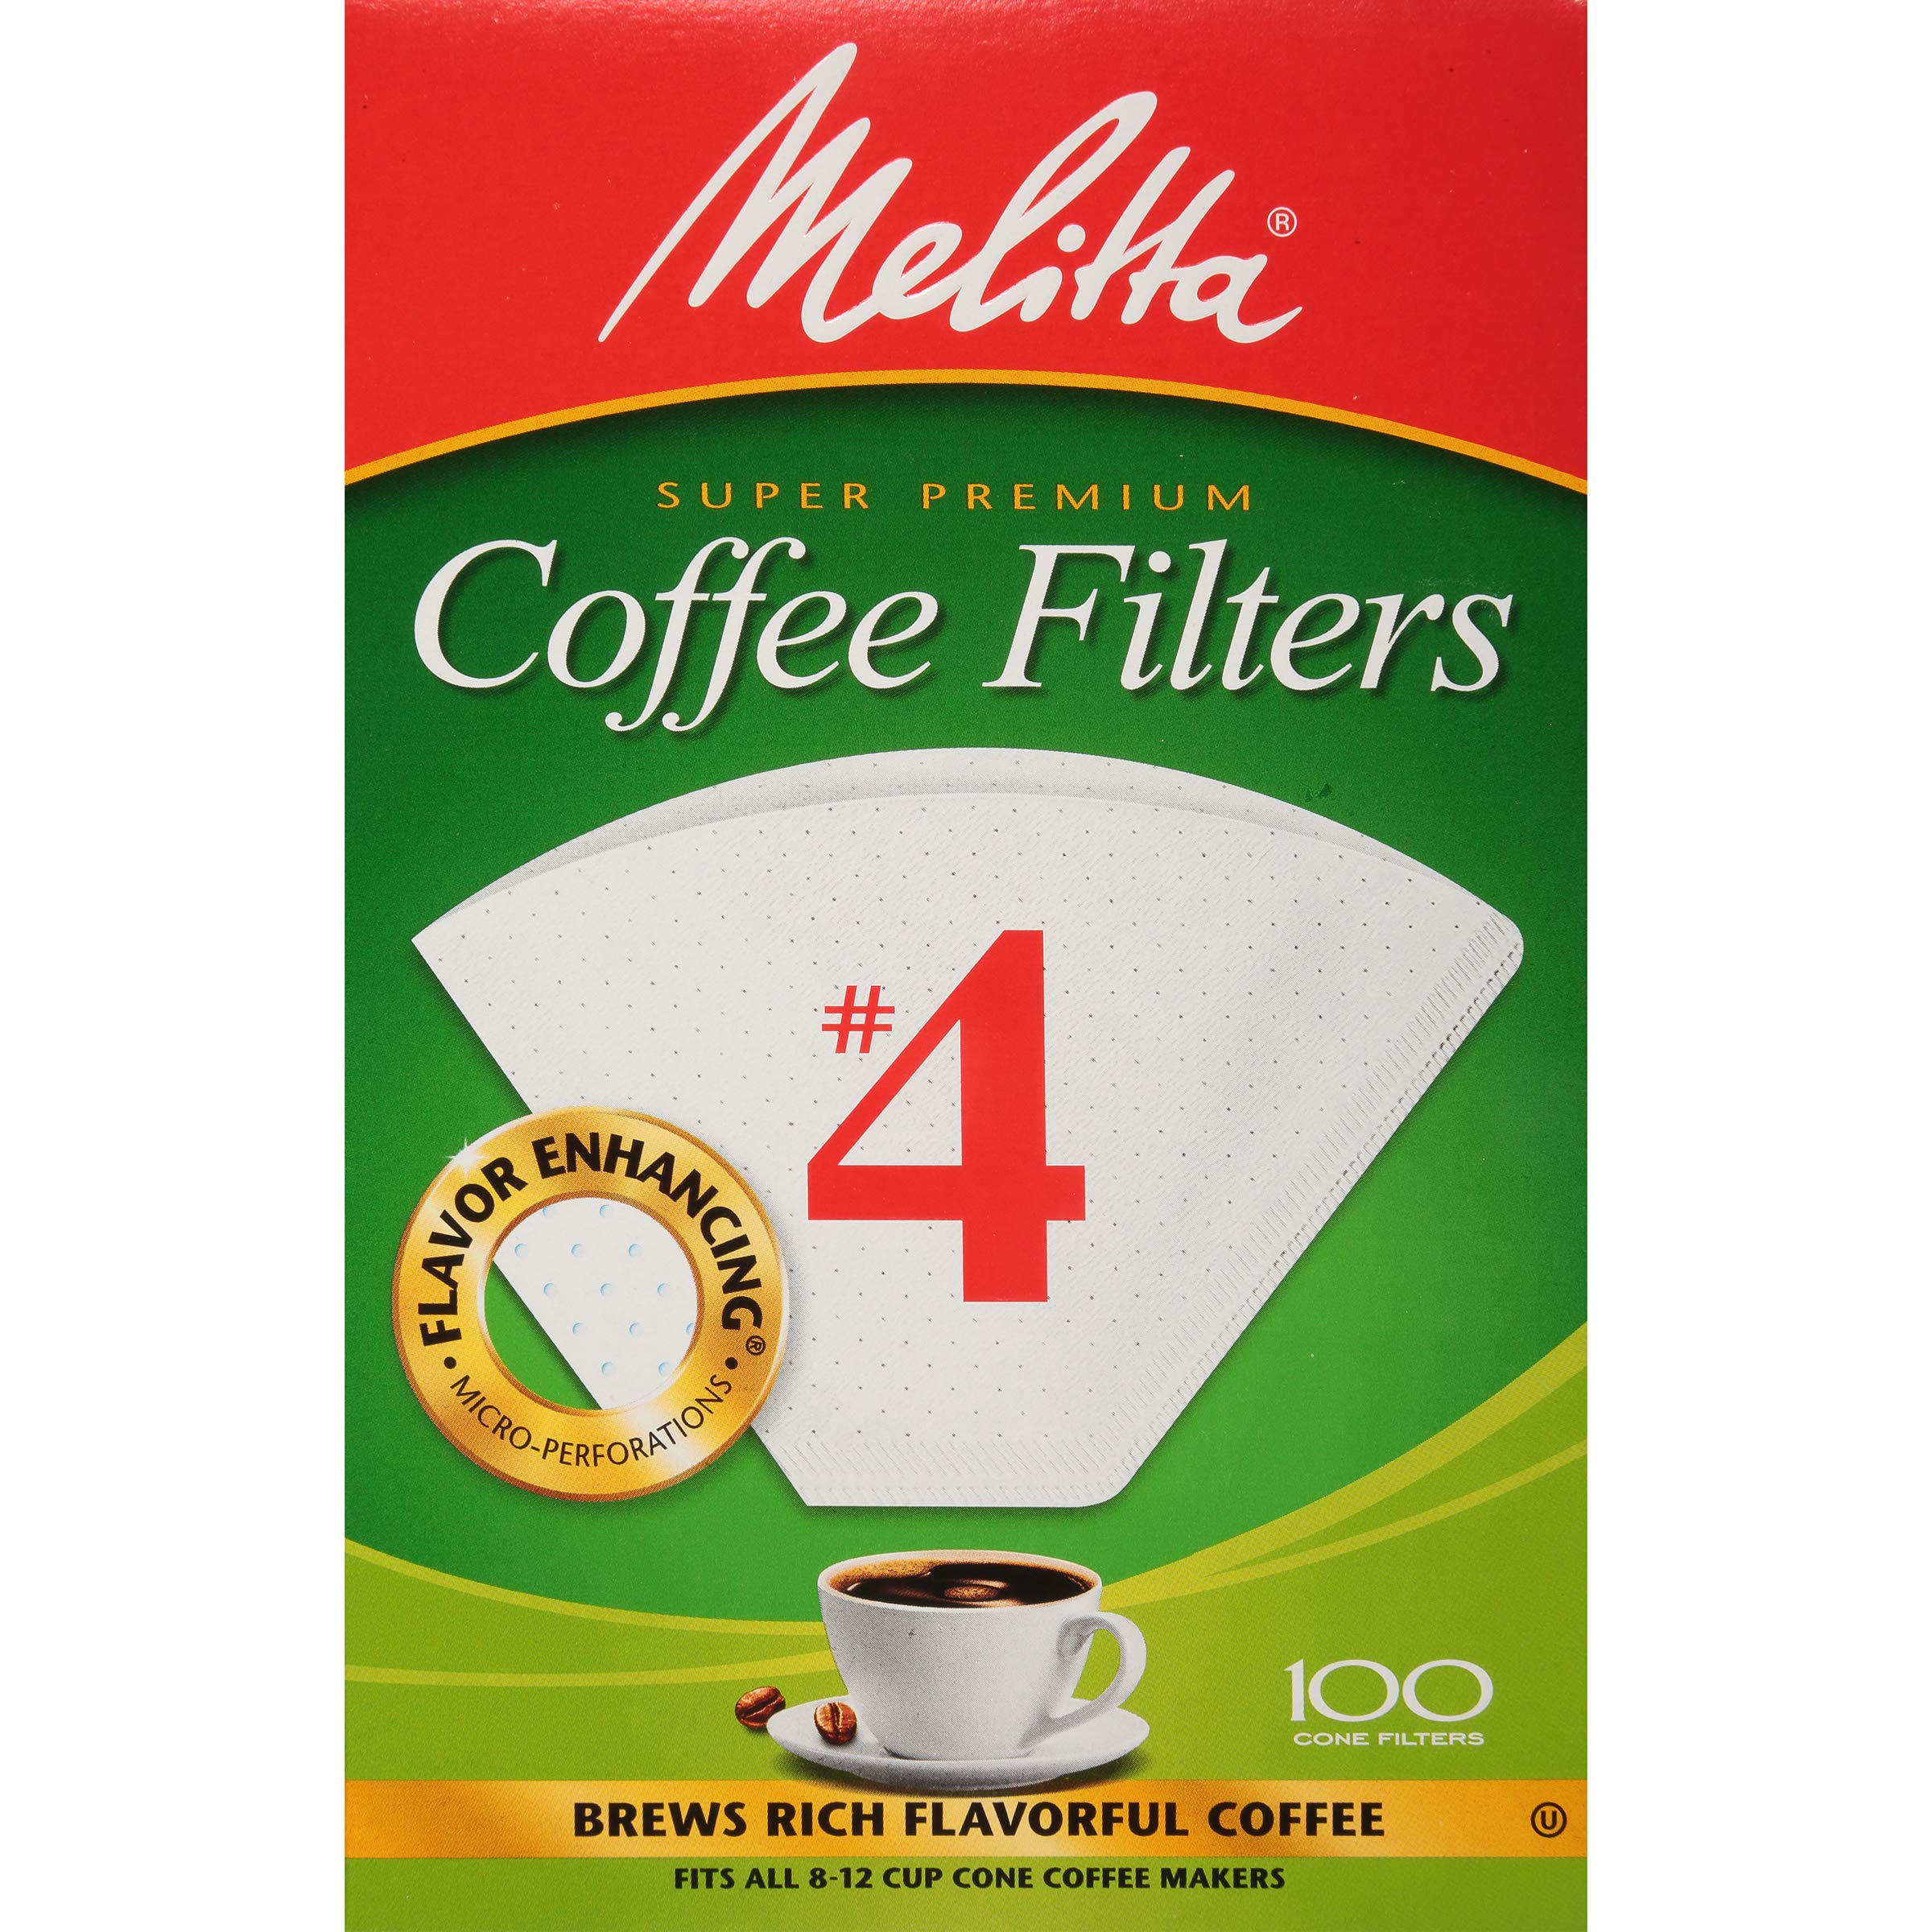 Melitta Cone Coffee Filter, White No. 4, 100 Count (Pack of 6) by Melitta (Image #1)